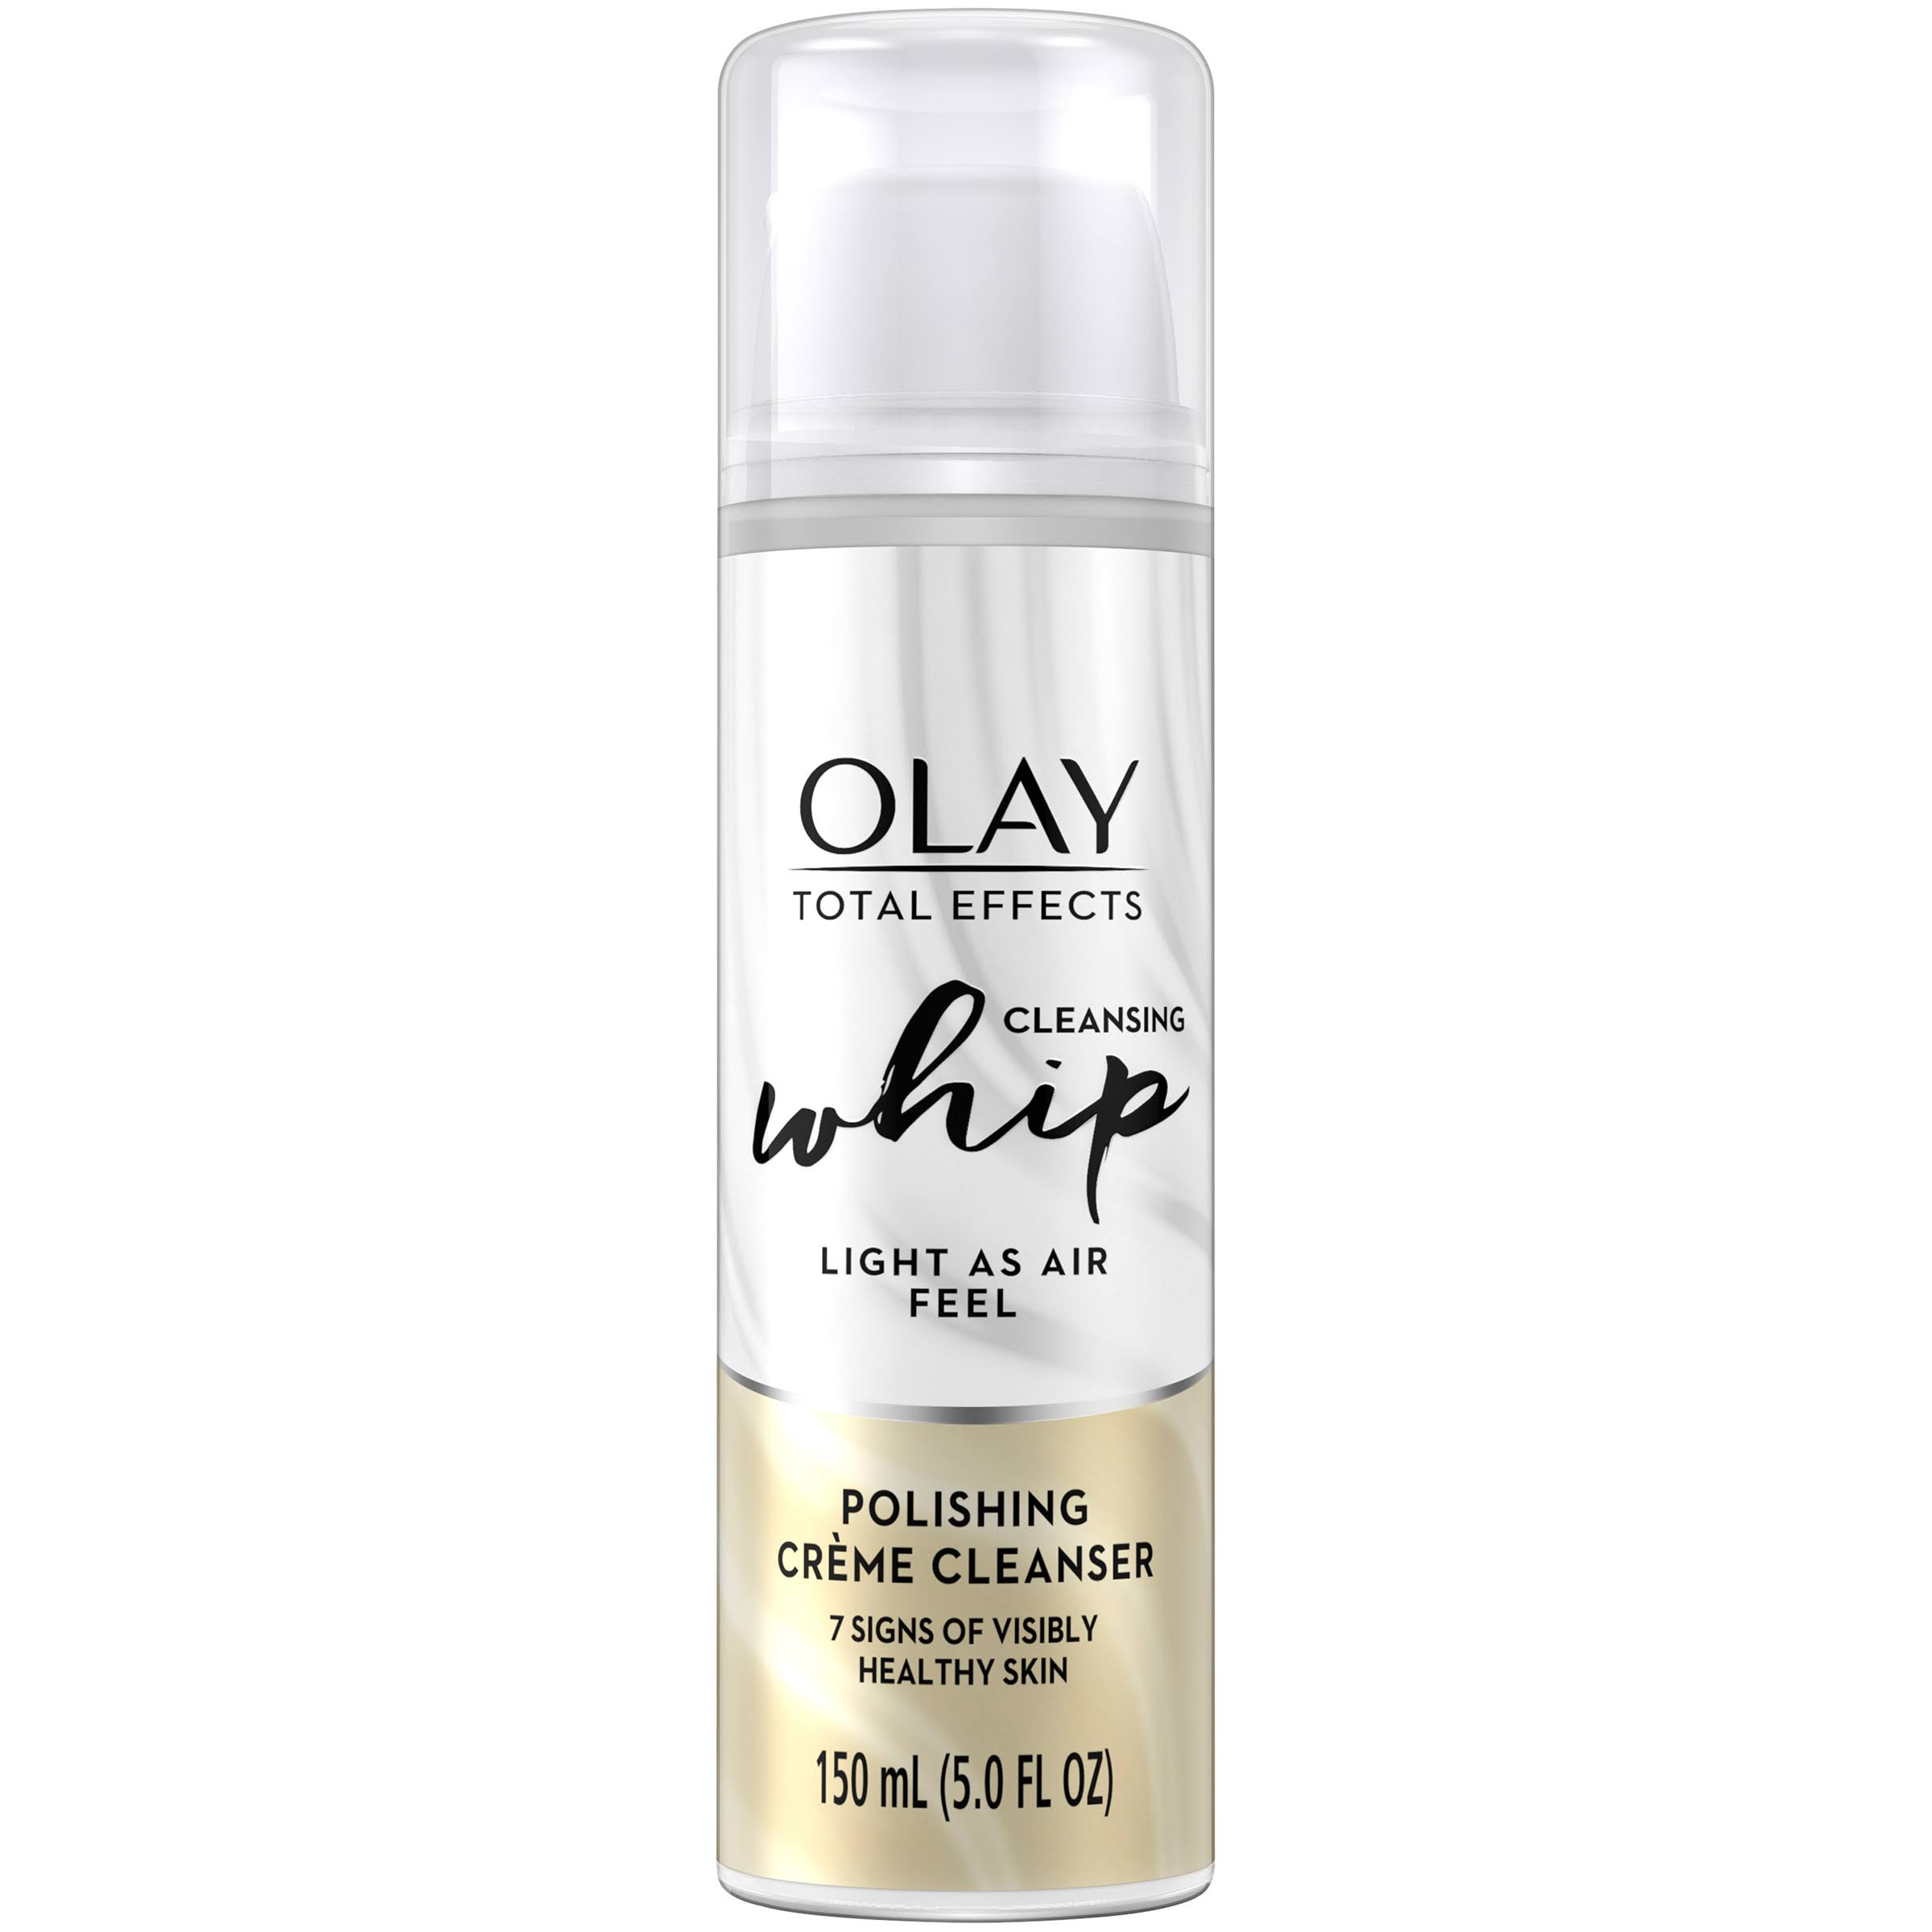 Olay Total Effects Cleansing Whip Facial Cleanser - 5oz